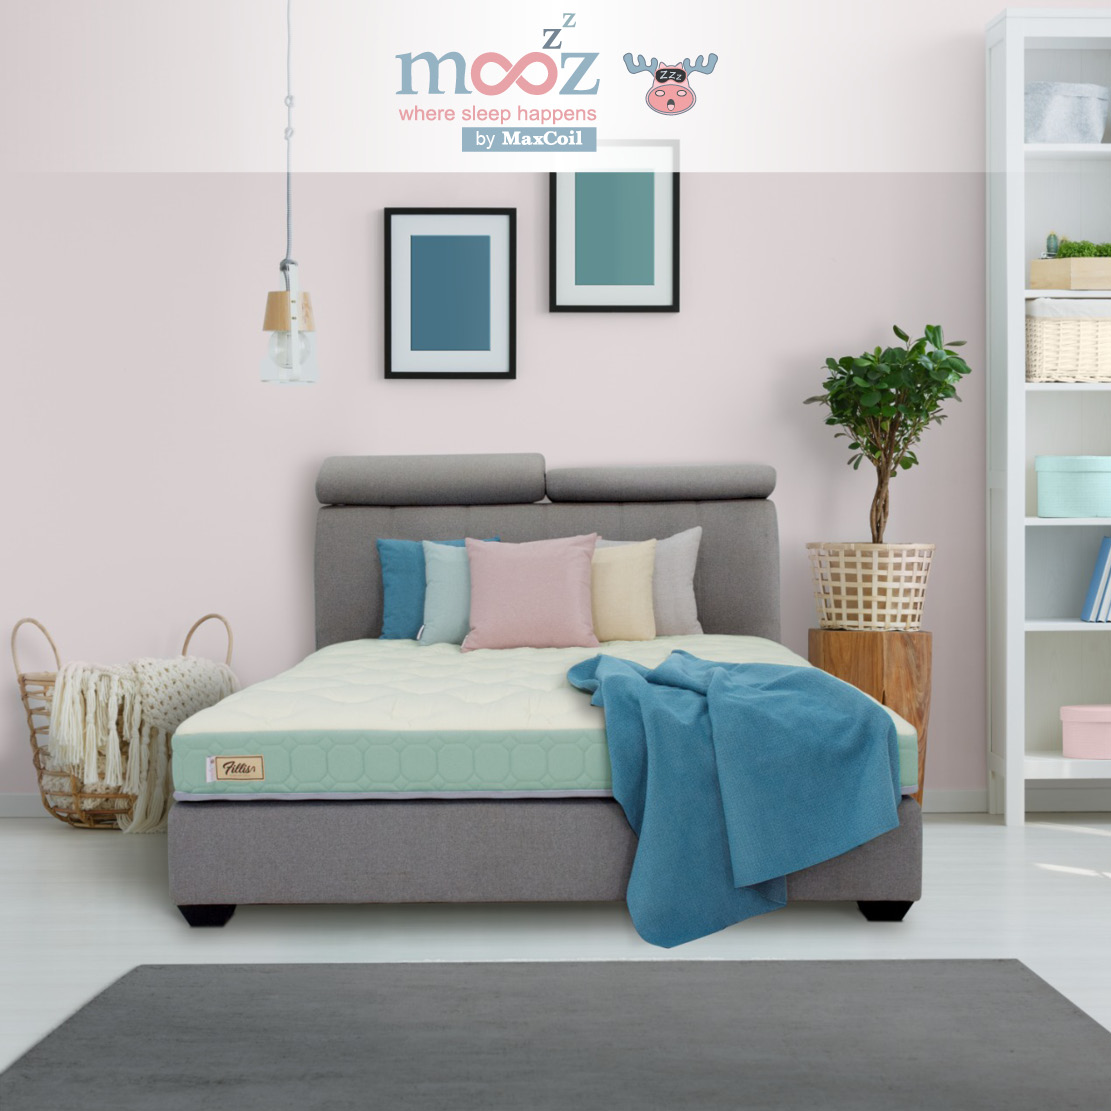 mooZzz Fillis 4inch, 6inch and 8inch Foam Mattress | Available in Single, Super Single, Queen and King